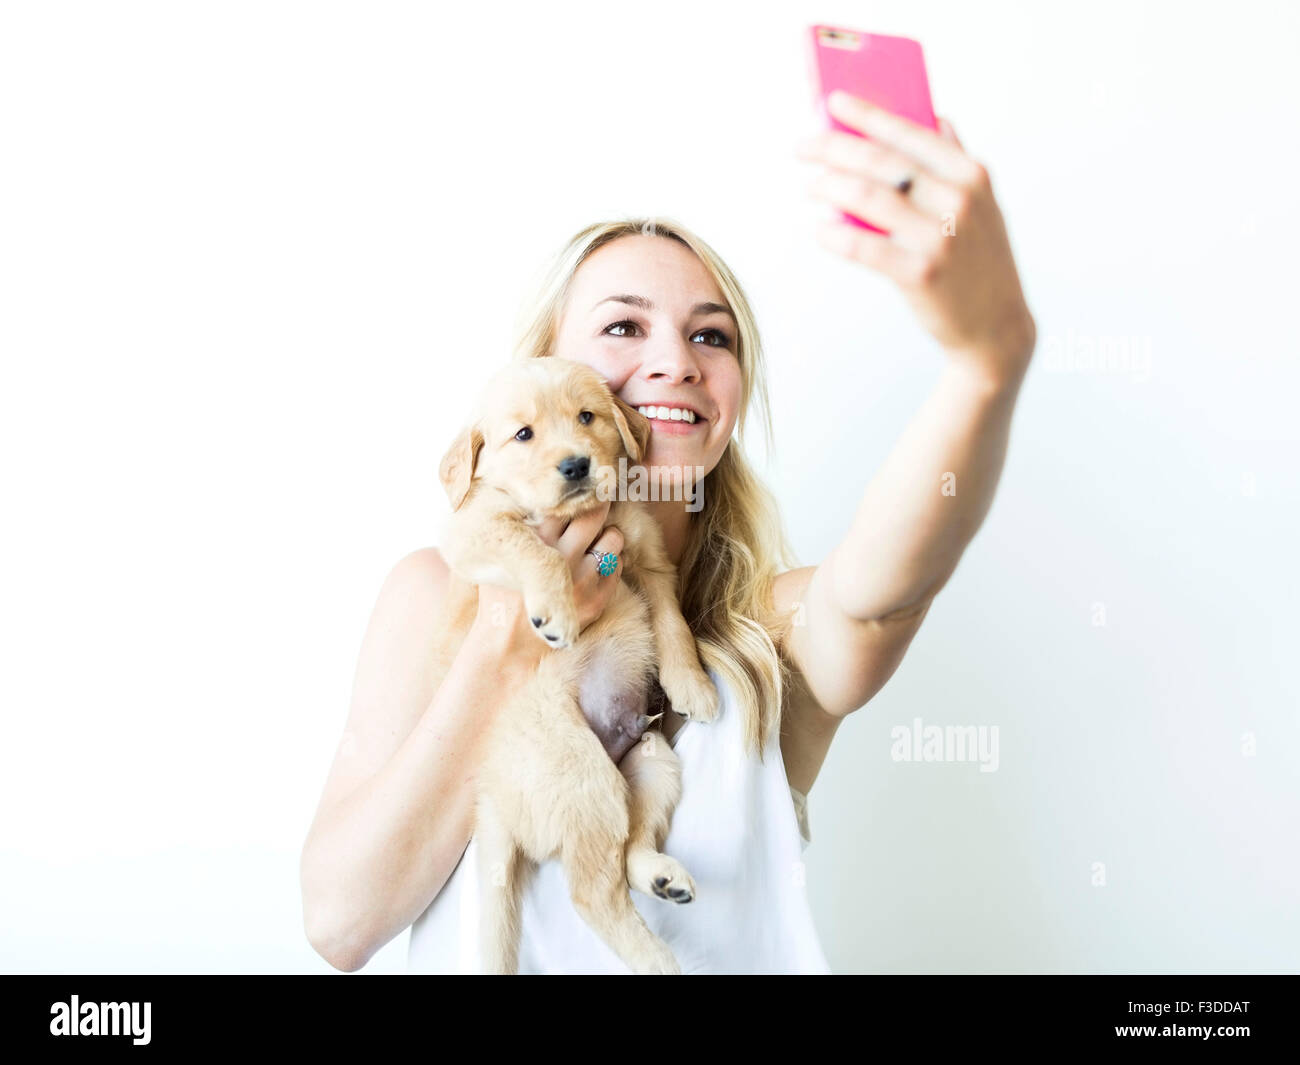 Studio shot of woman photographing self with Golden Retriever puppy - Stock Image